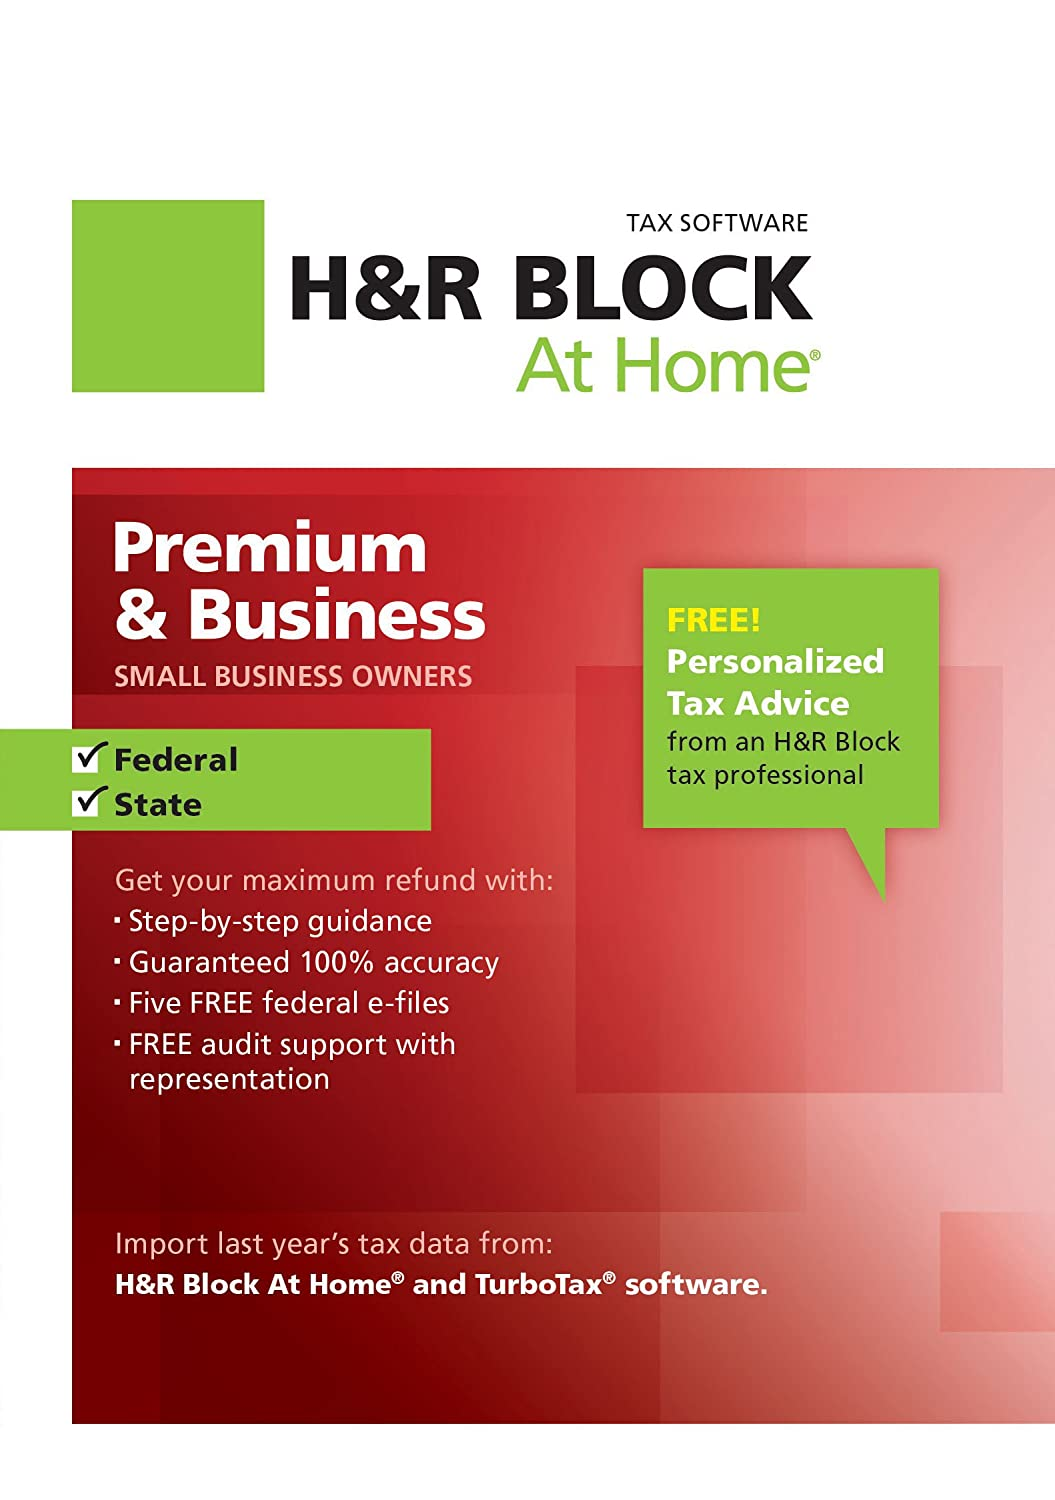 H&r block tax software coupon code